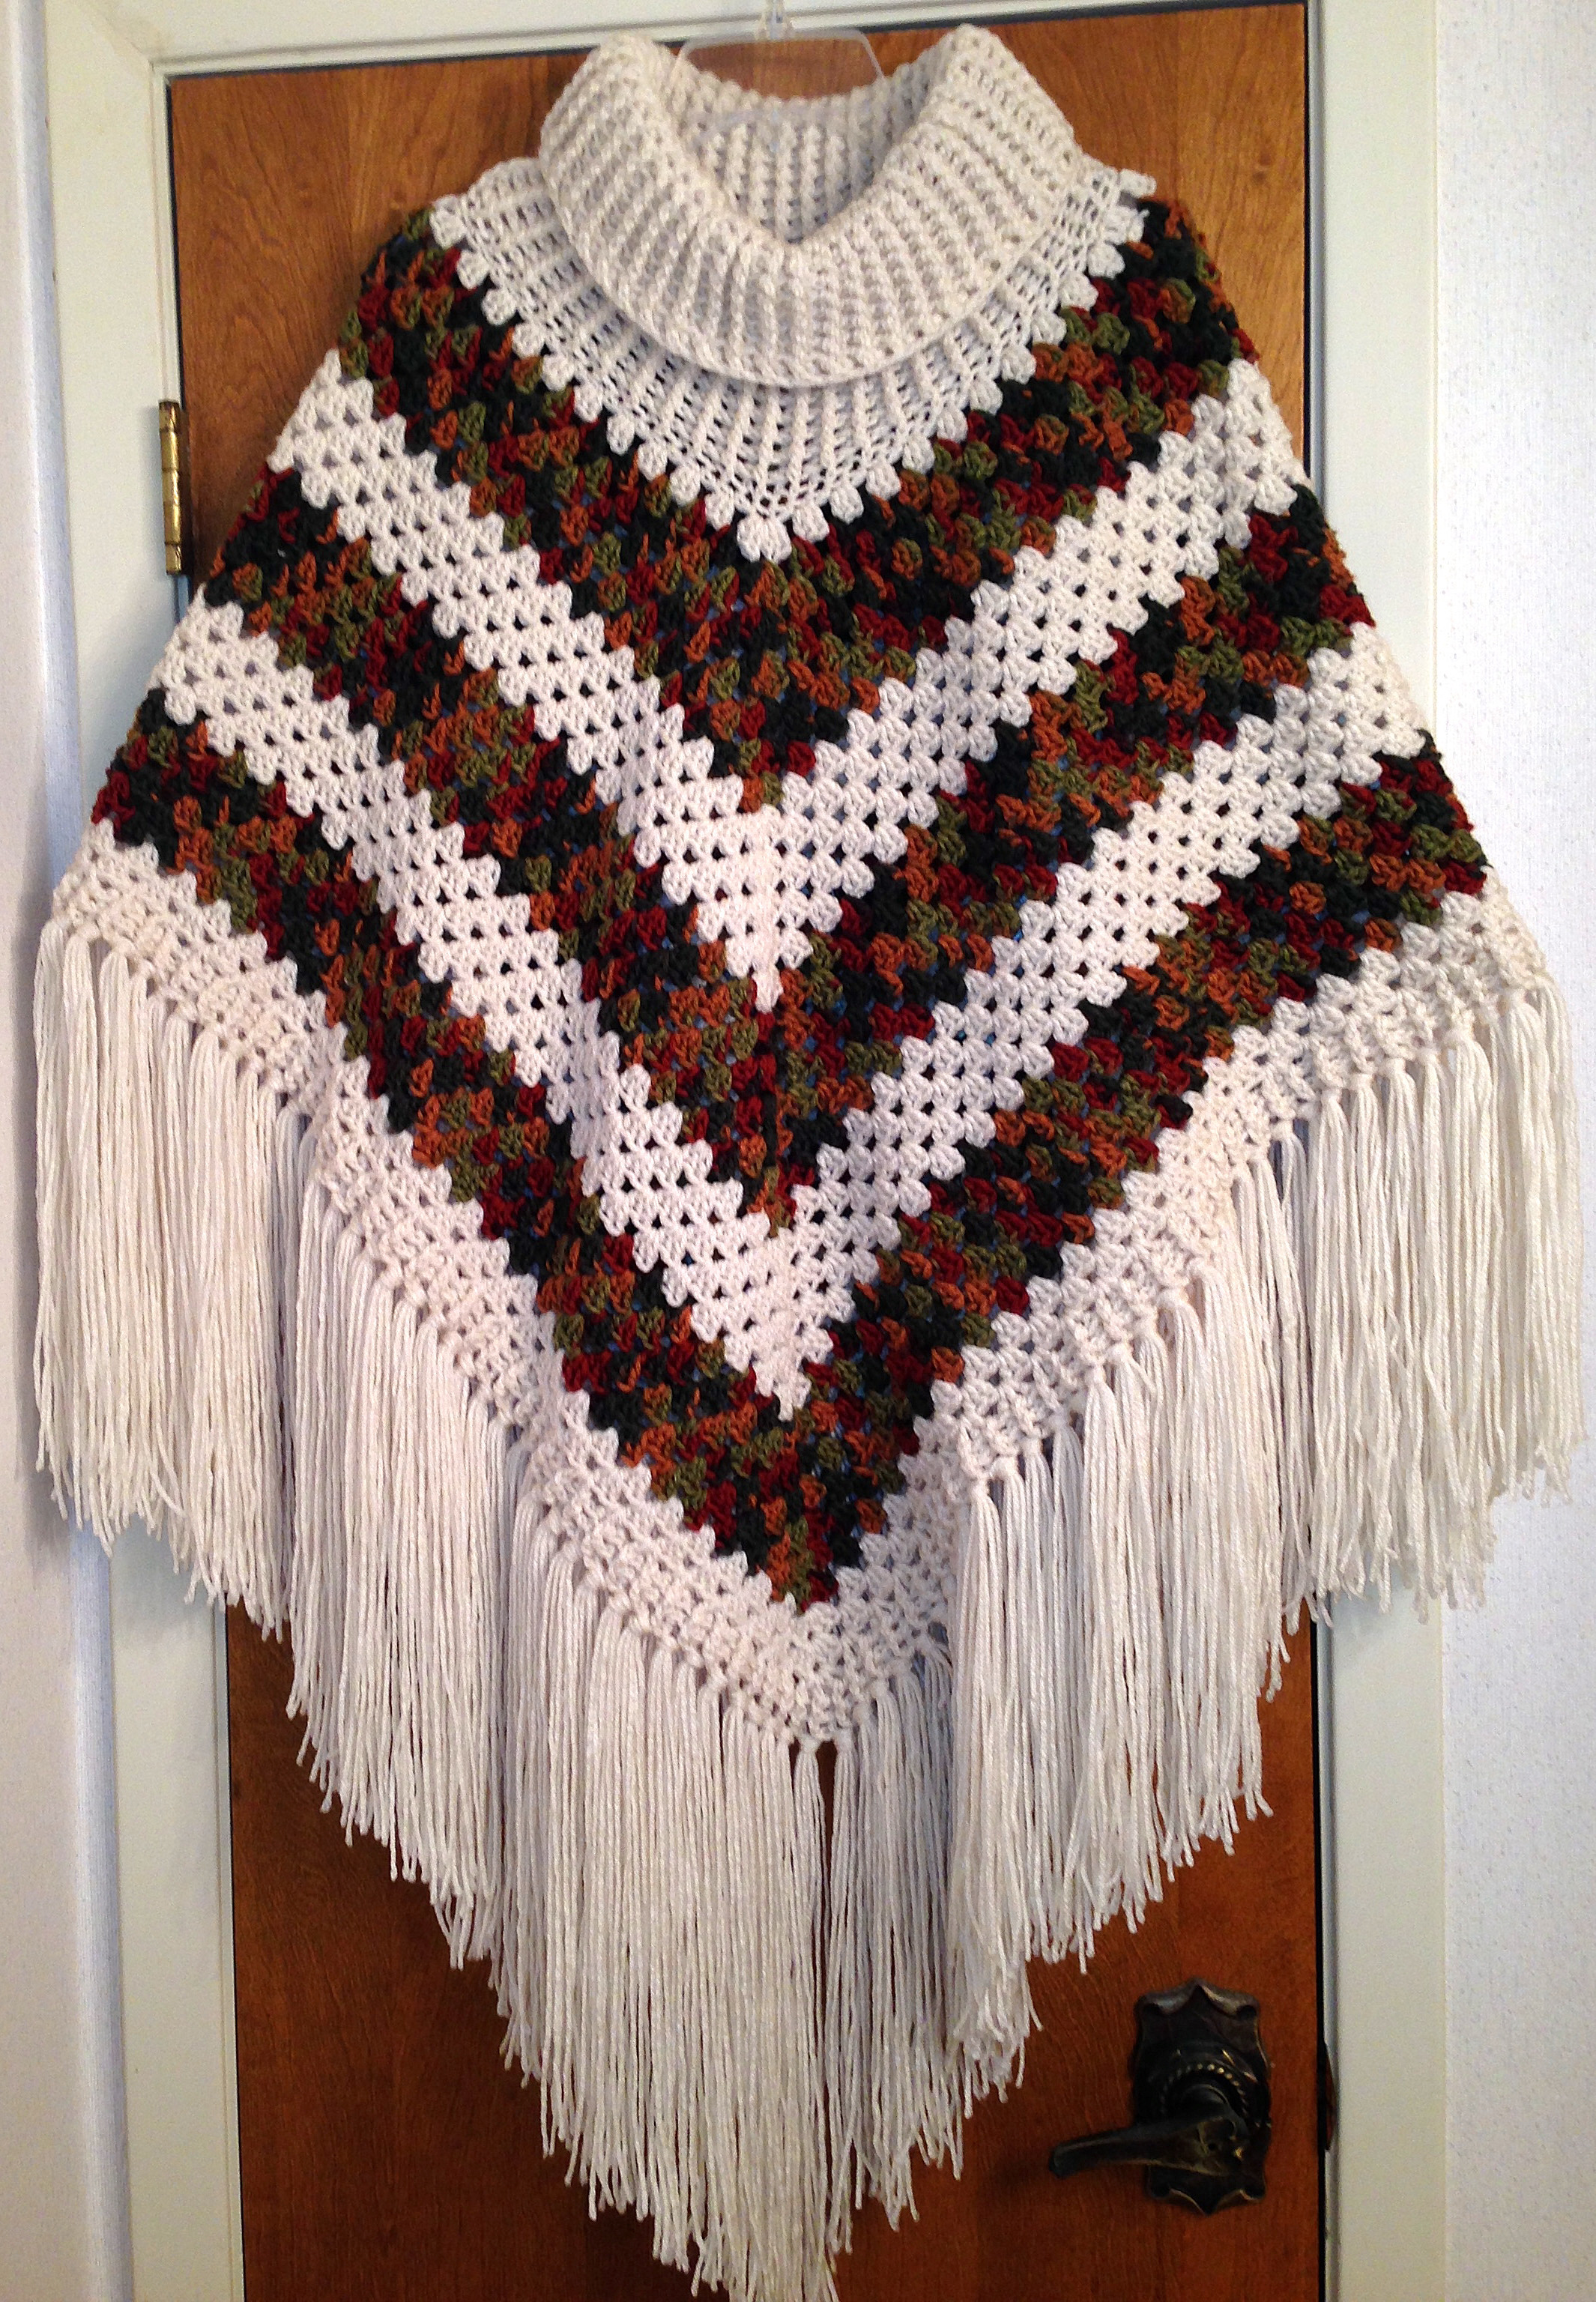 Best Of Simply Crochet Cowl Neck Poncho Crochet Cowl Neck Poncho Of Beautiful 44 Pics Crochet Cowl Neck Poncho